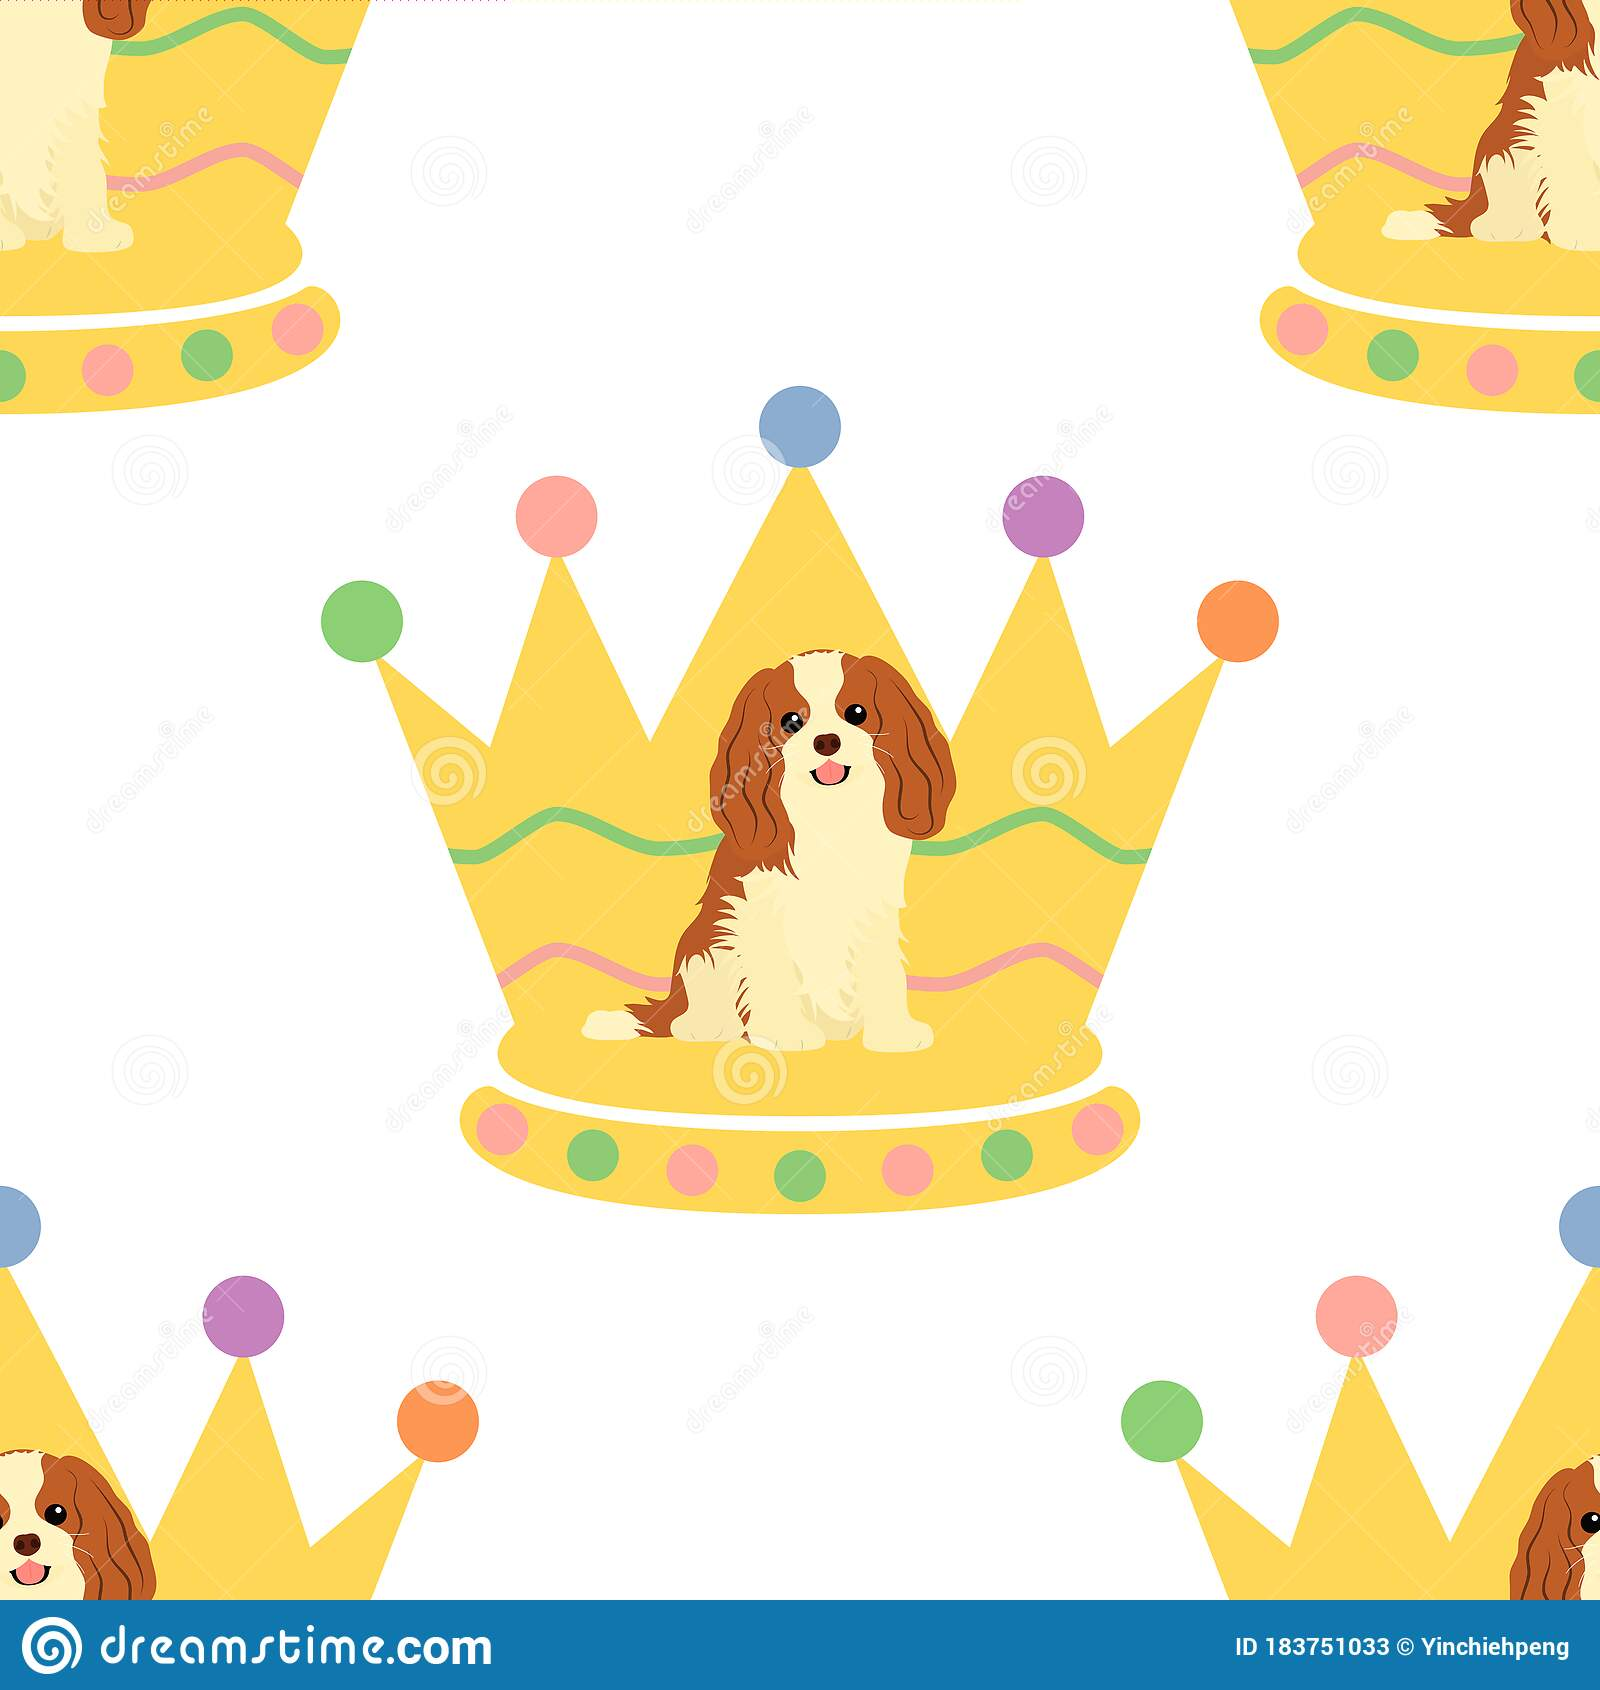 Crown Dog King Stock Illustrations 399 Crown Dog King Stock Illustrations Vectors Clipart Dreamstime Cute cartoon cat dog pack collection. dreamstime com